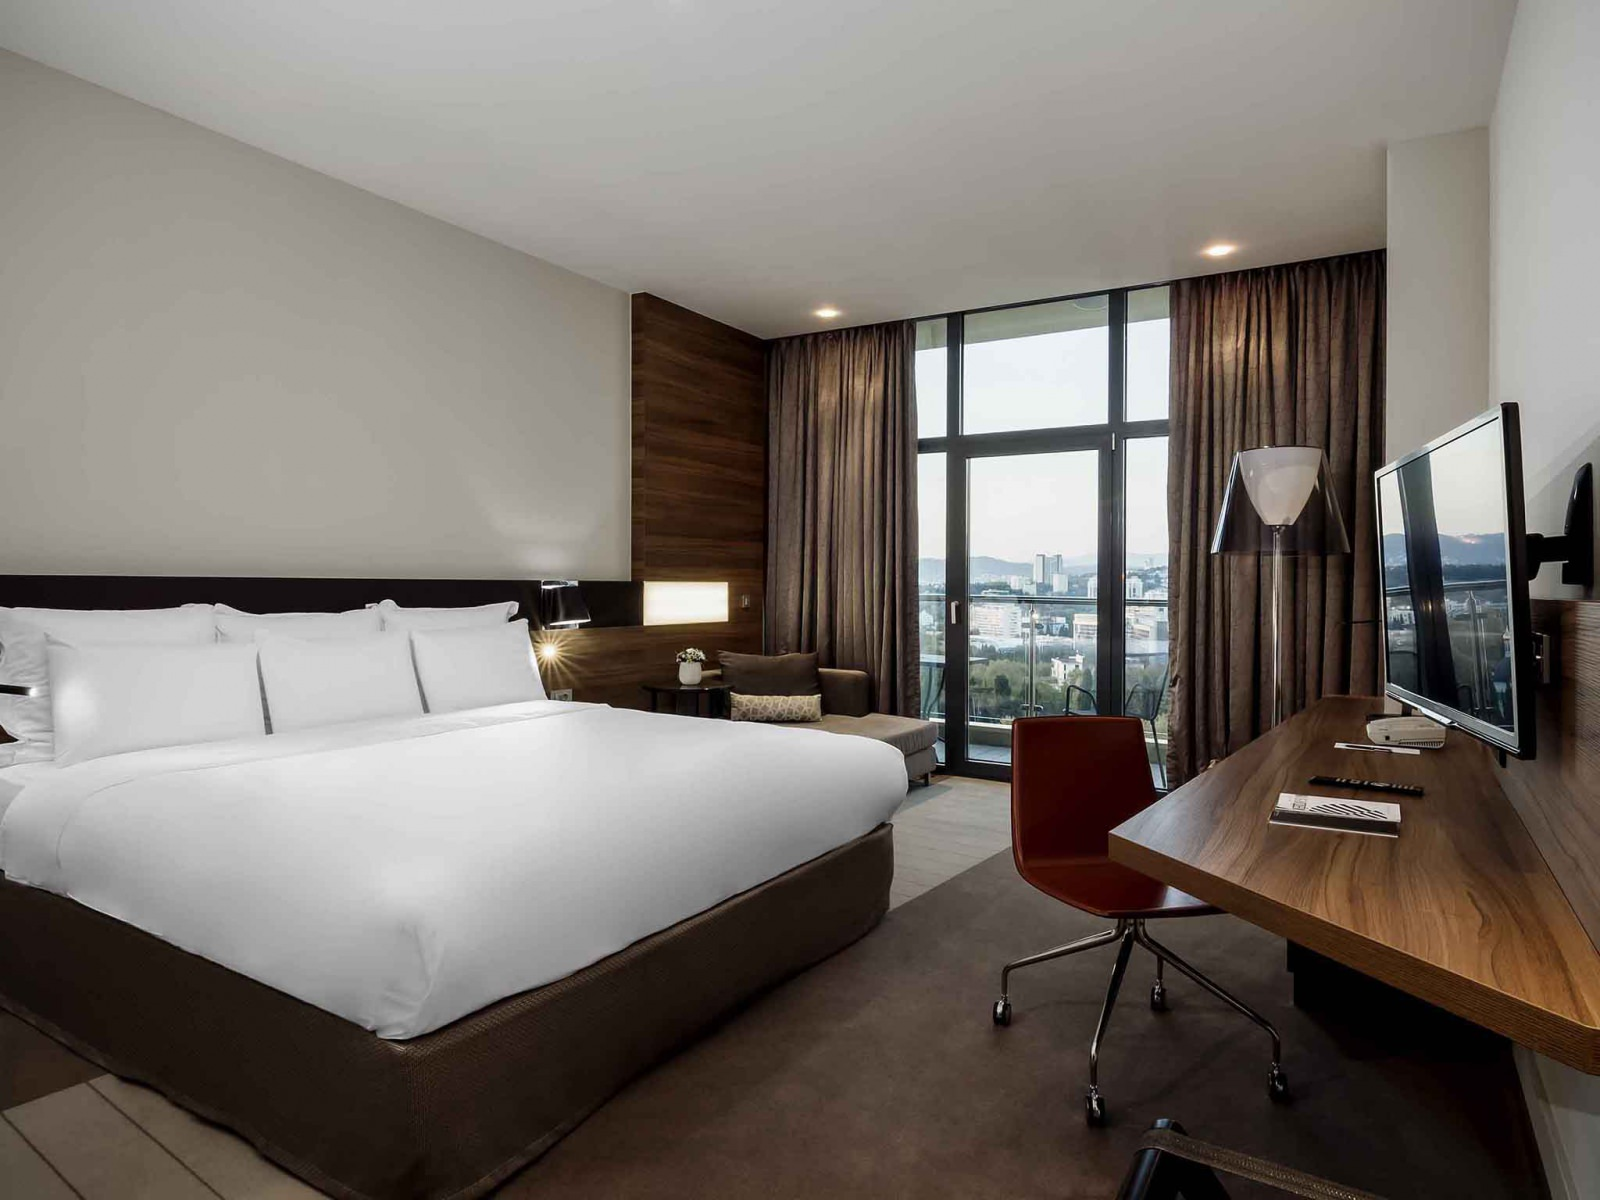 Superior with double bed (city view) - Отель «Pullman Sochi Centre»